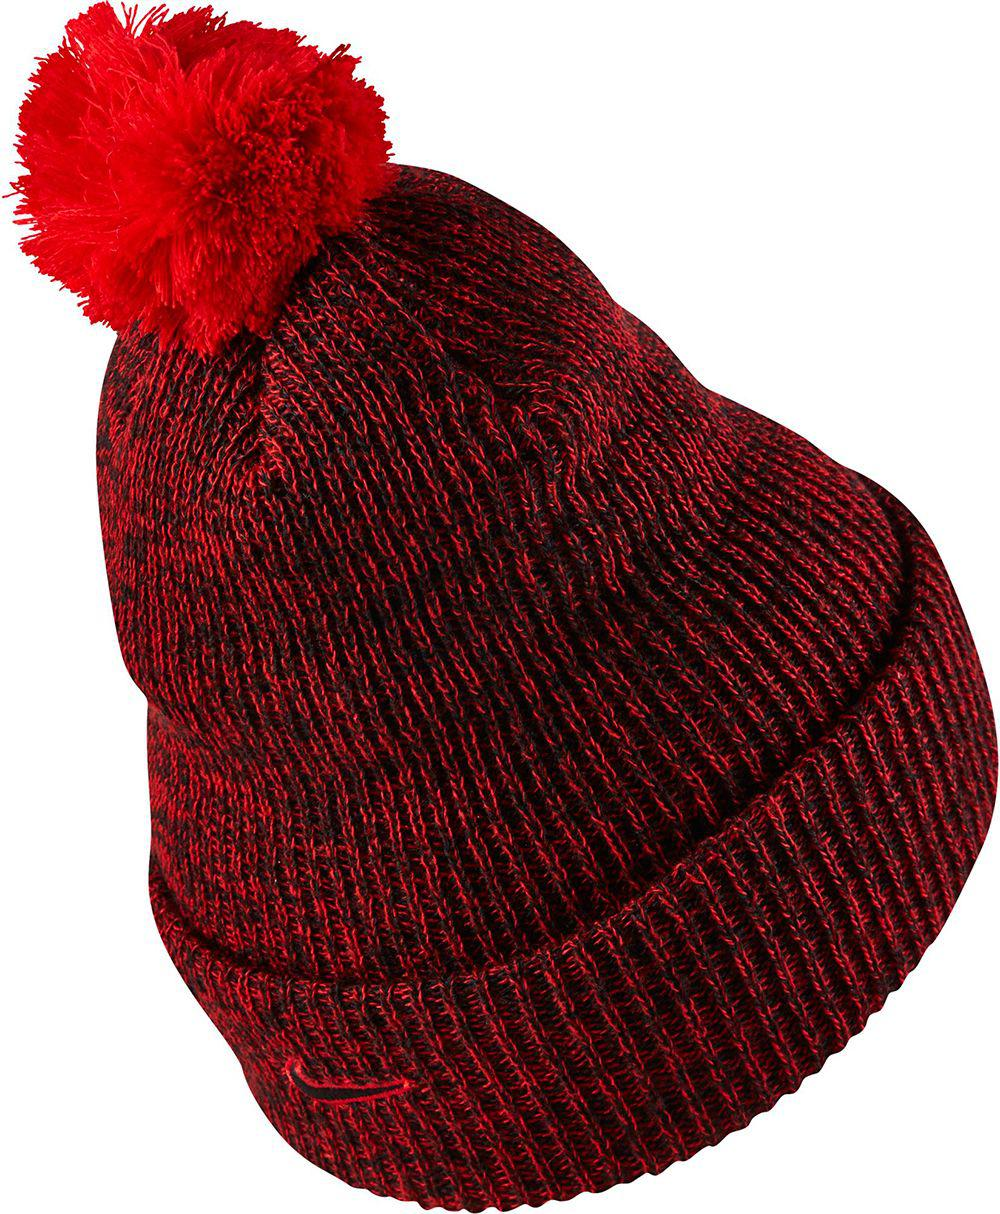 394efd9721fc4 Lyst - Nike Lebron Xii Knit Hat in Red